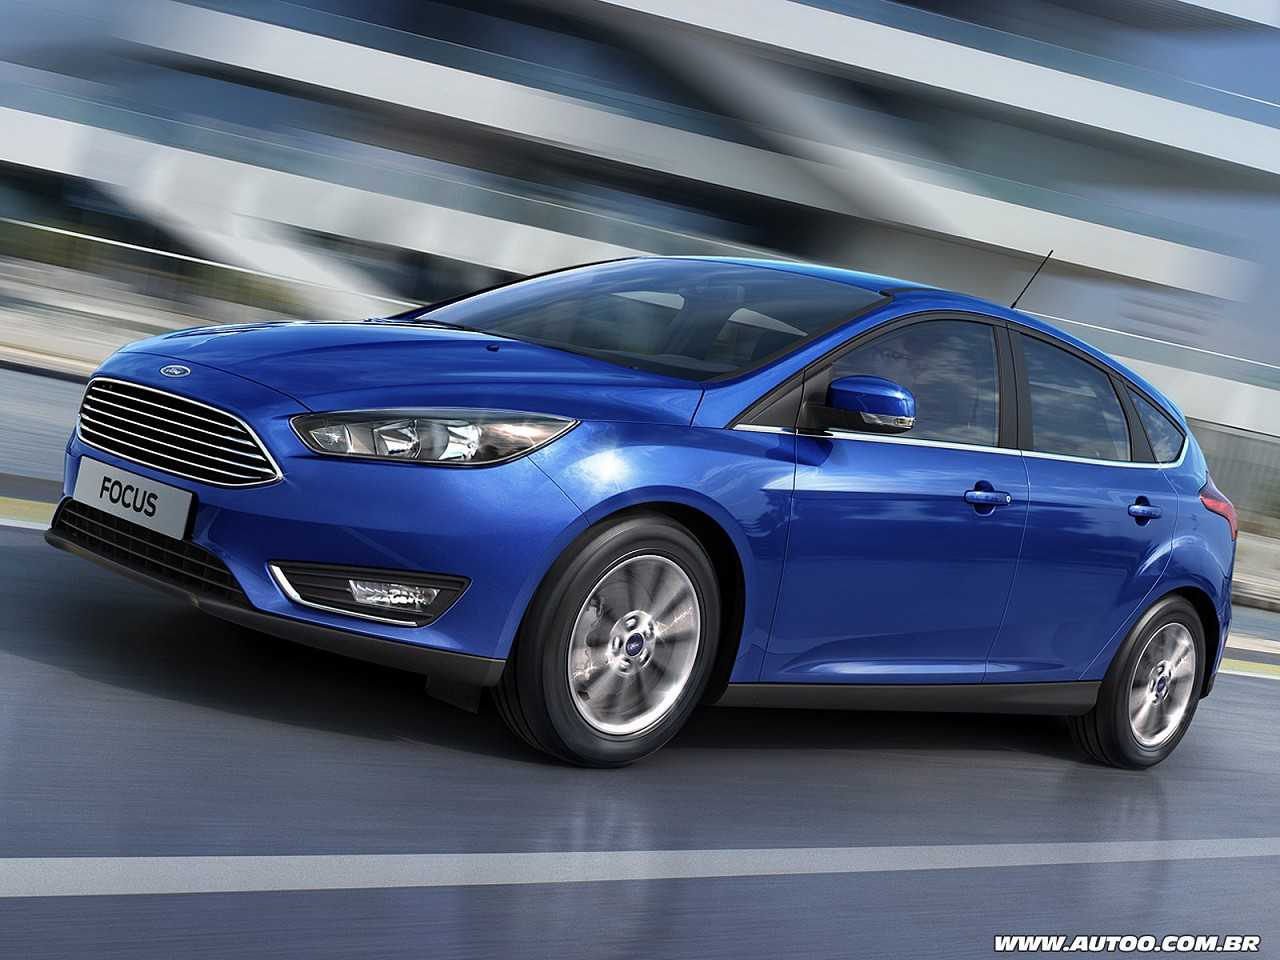 Ford Focus 2017 - ângulo frontal